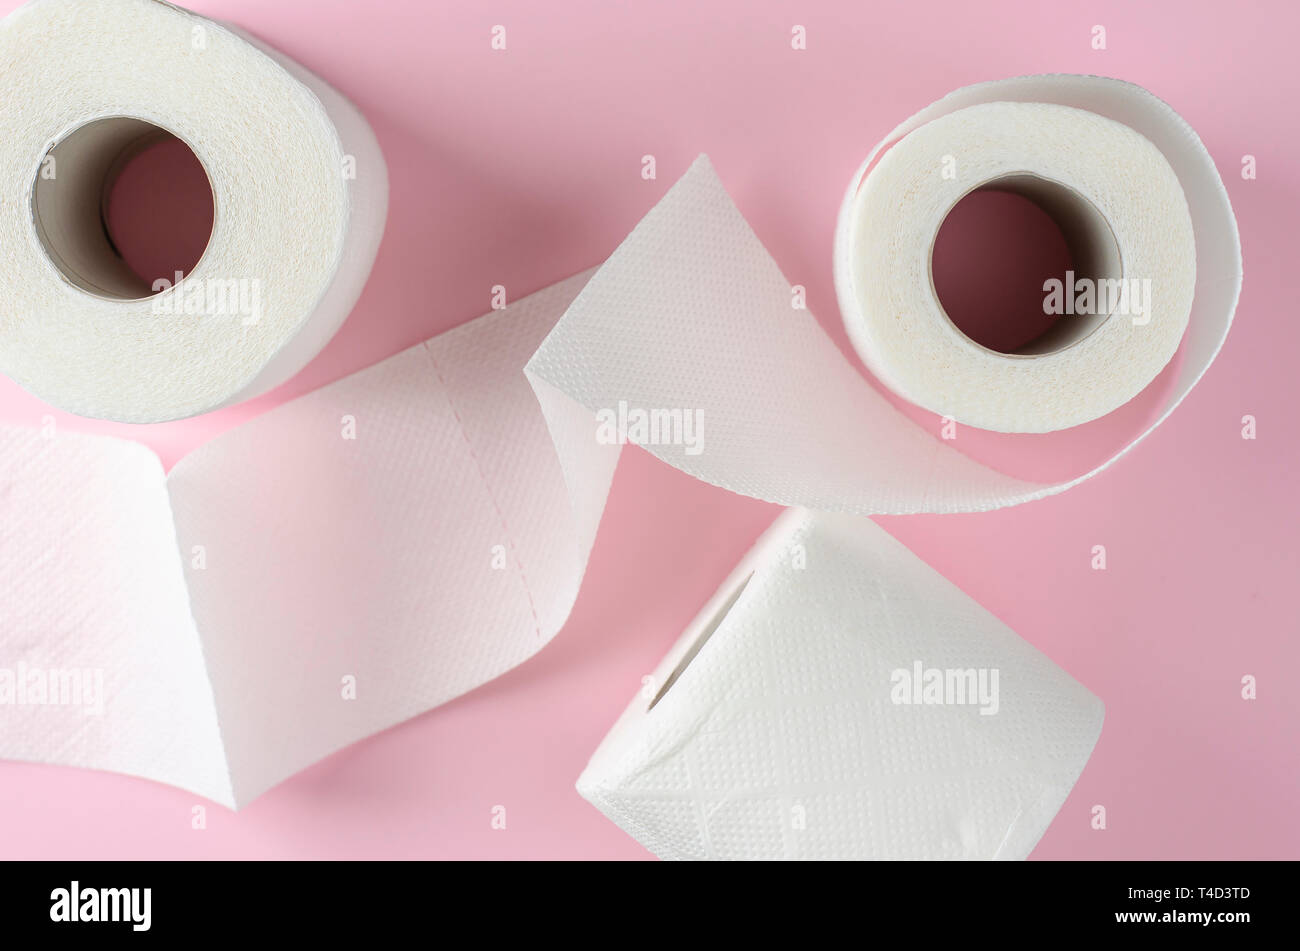 White toilet paper rolls on pastel pink background. Space for text. Hygienic and everyday use object. - Stock Image